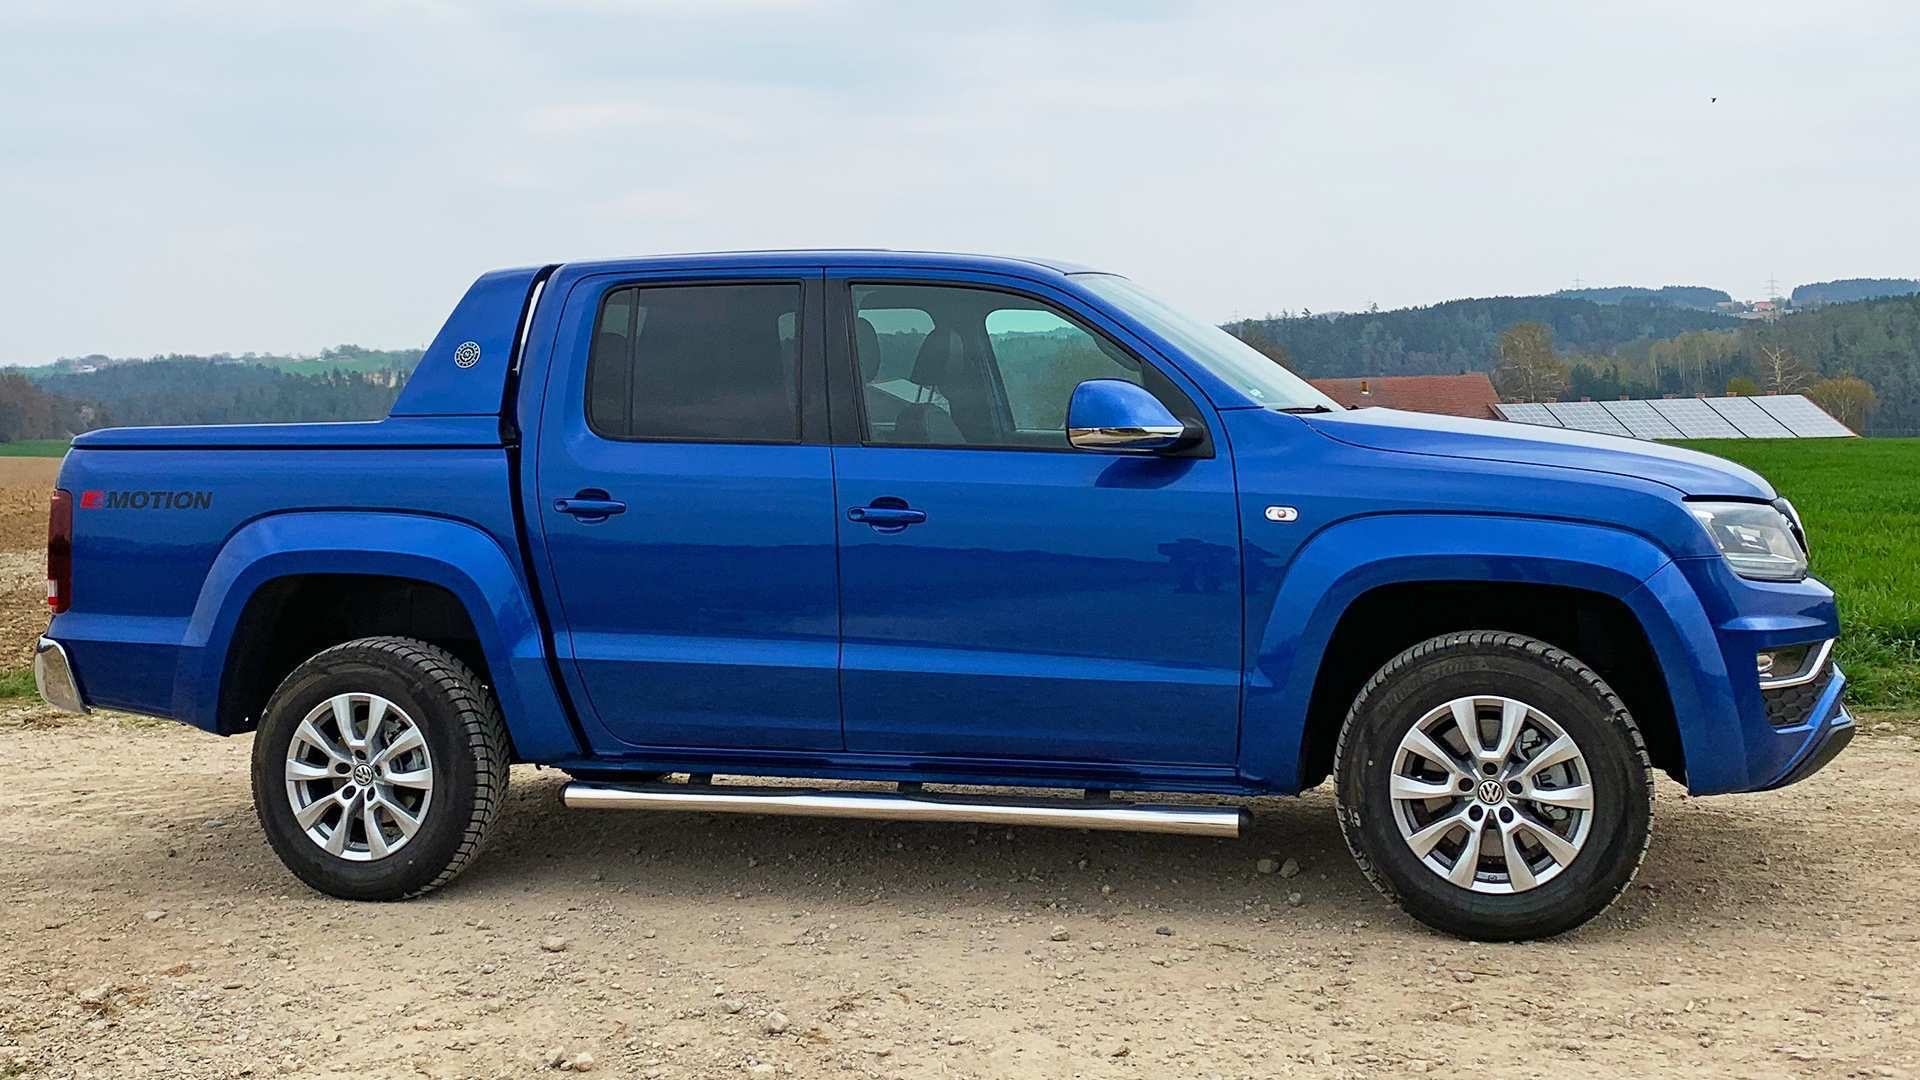 51 All New 2019 VW Amarok Price And Release Date